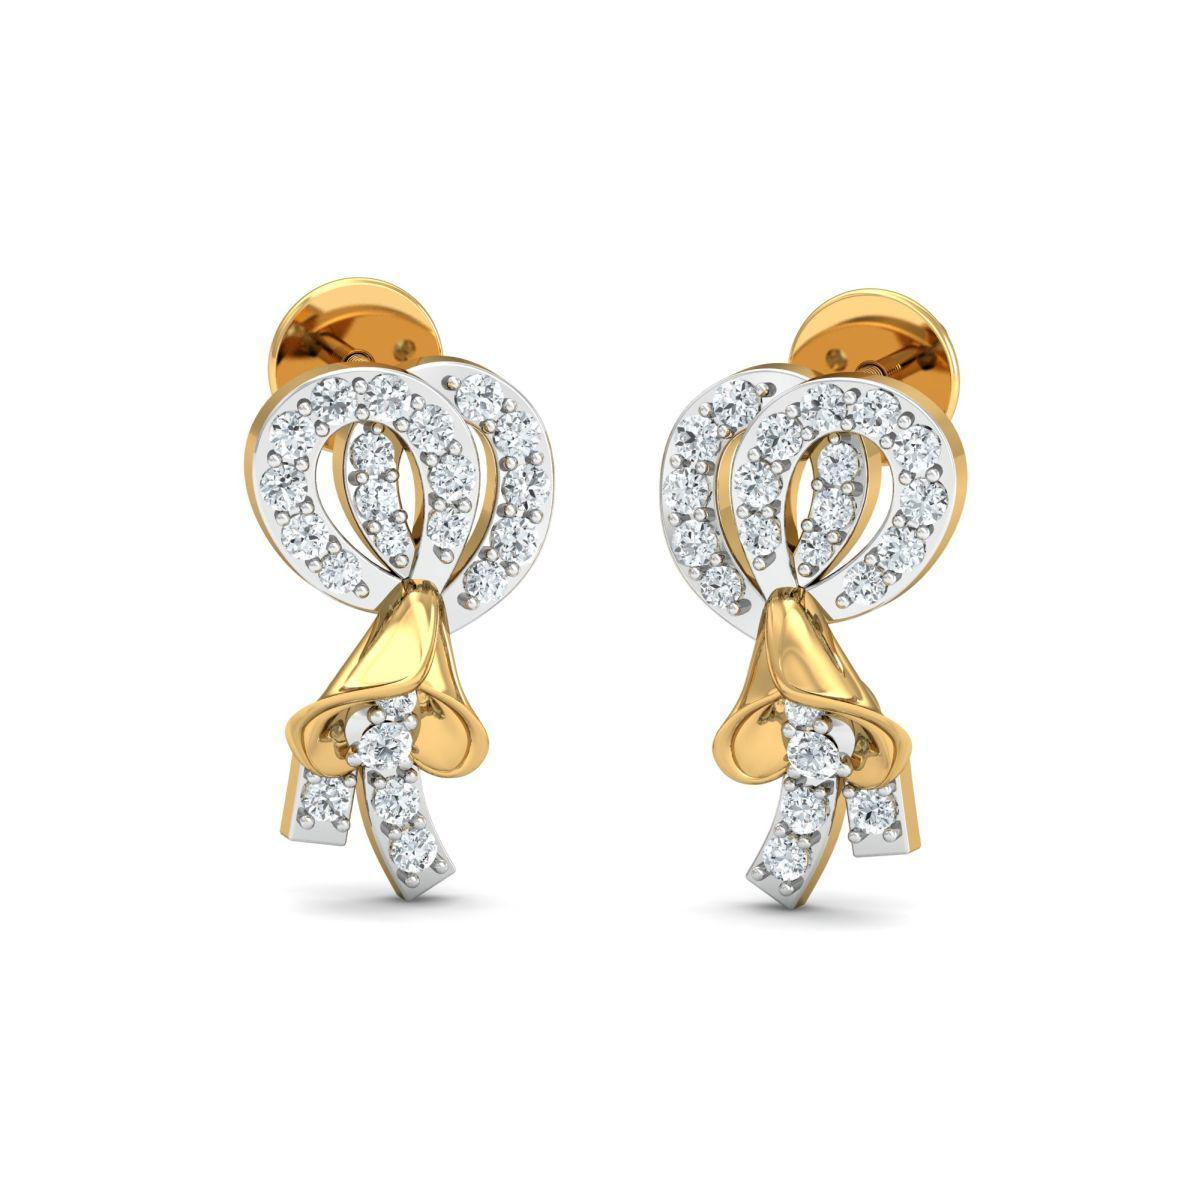 Diamoire Jewels 18kt Yellow Gold 0.11ct Pave Diamond Infinity Earrings II lCdud